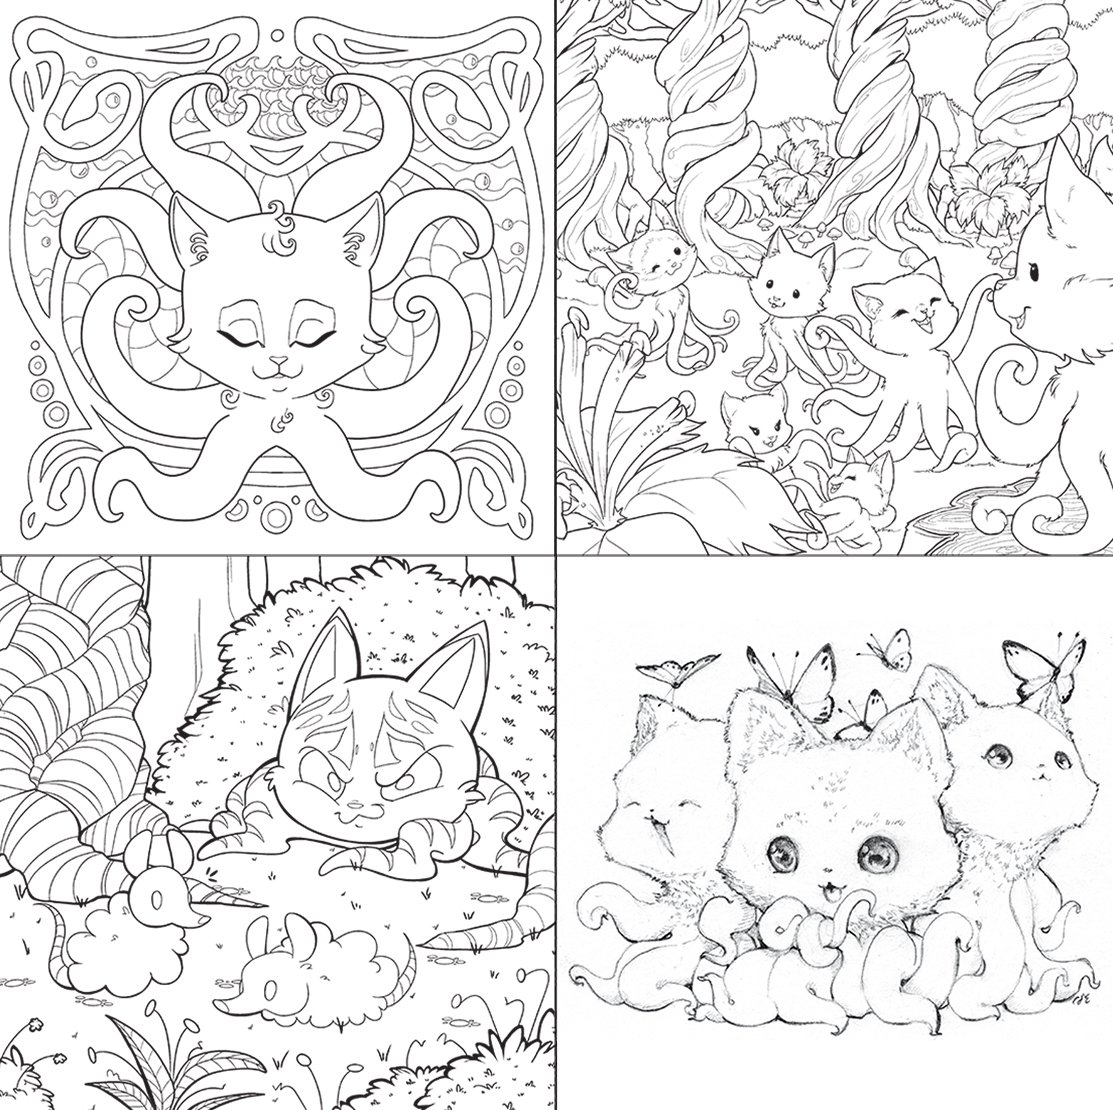 4400 Tentacle Kitty Coloring Book Free